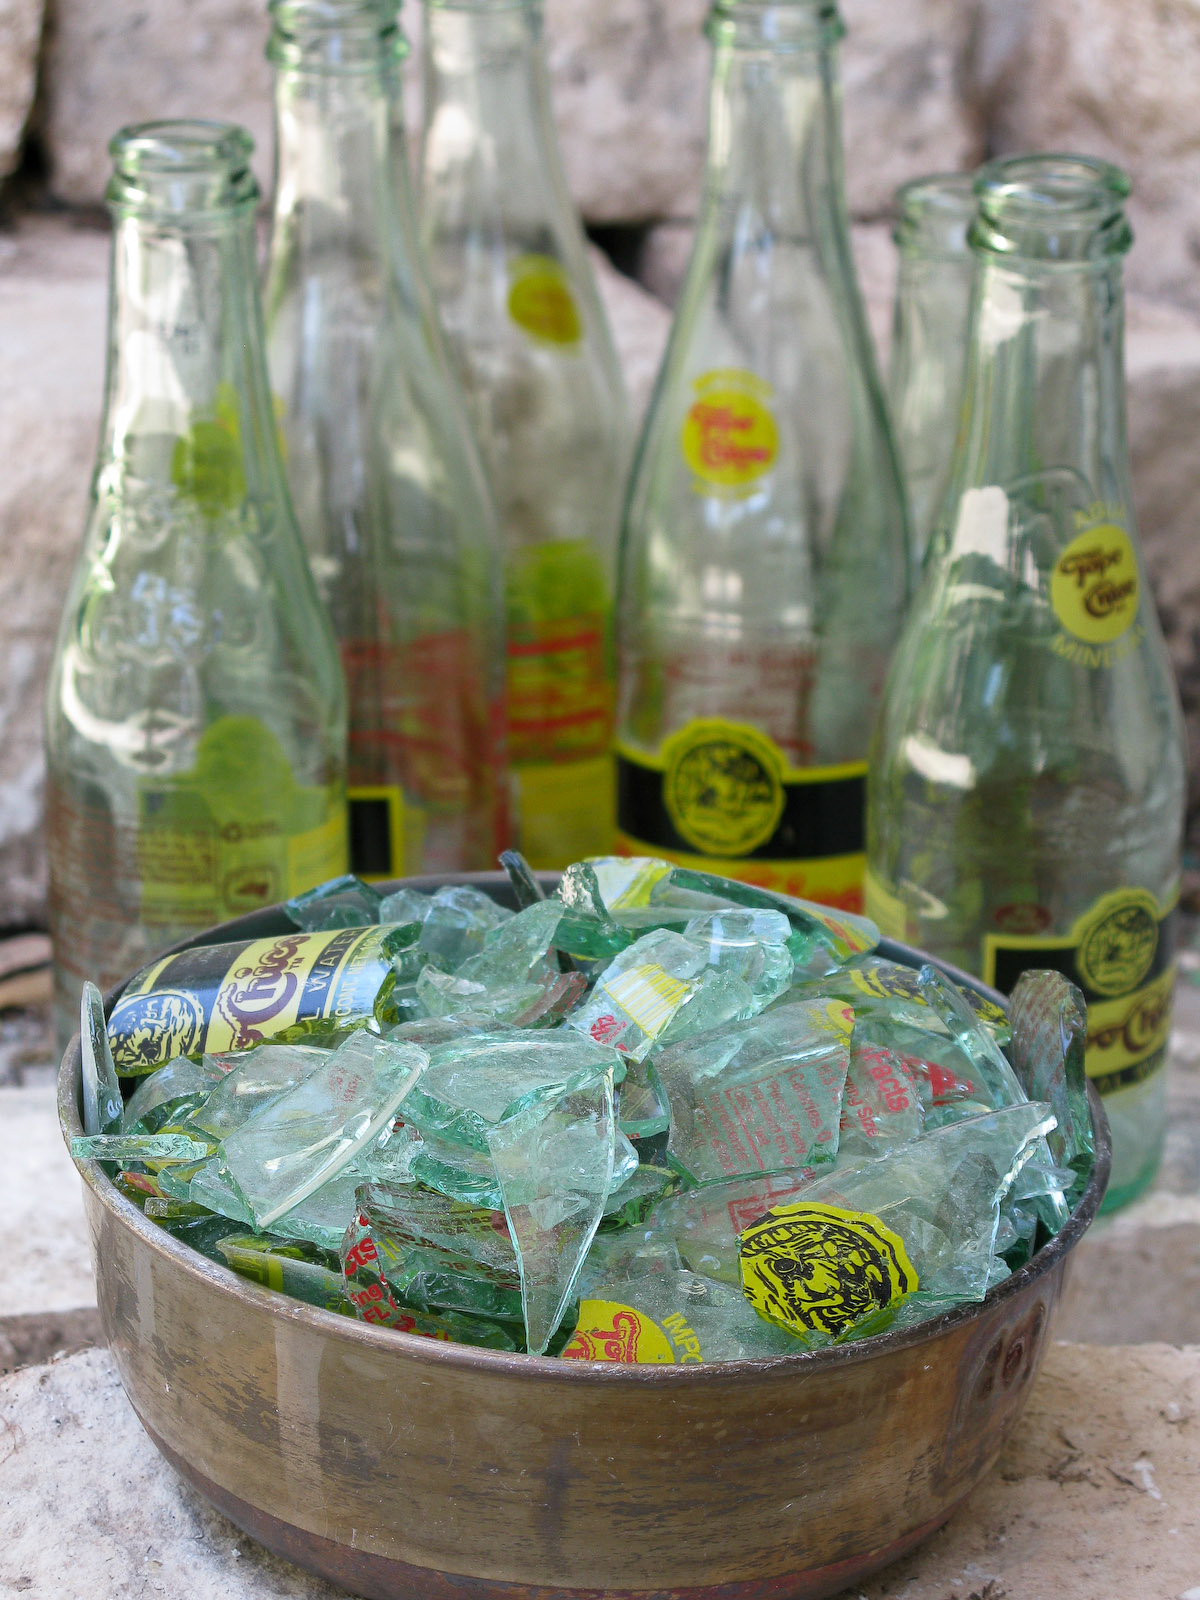 Recycled wine bottle glasses - Recycled Glass Bottles For Glass Blowing